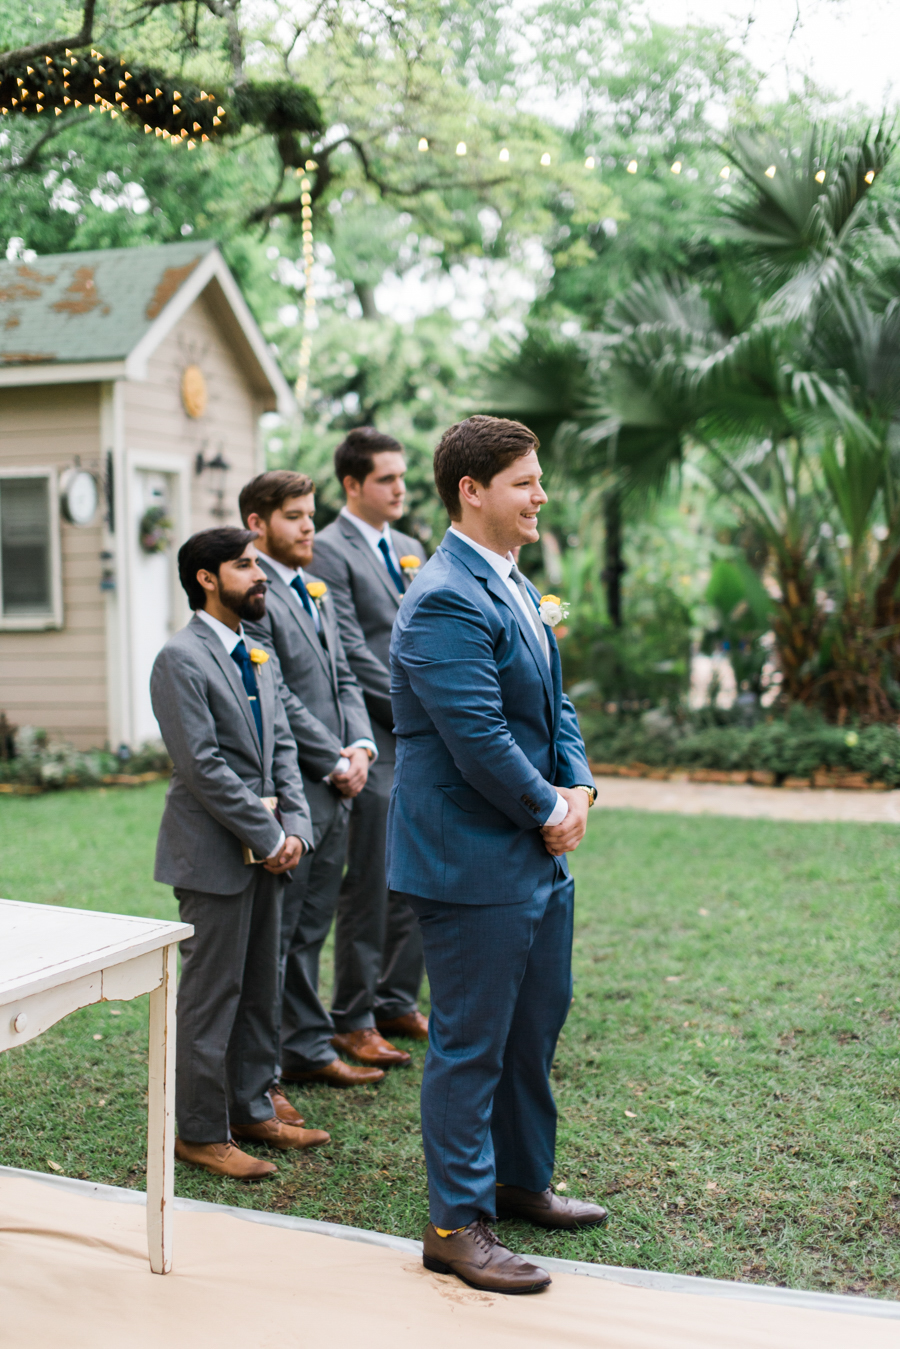 Dana Fernandez Photography Houston Texas Destination Photographer Film Ruffled Blog Wedding Bridal First Look Featured Photography -14.jpg